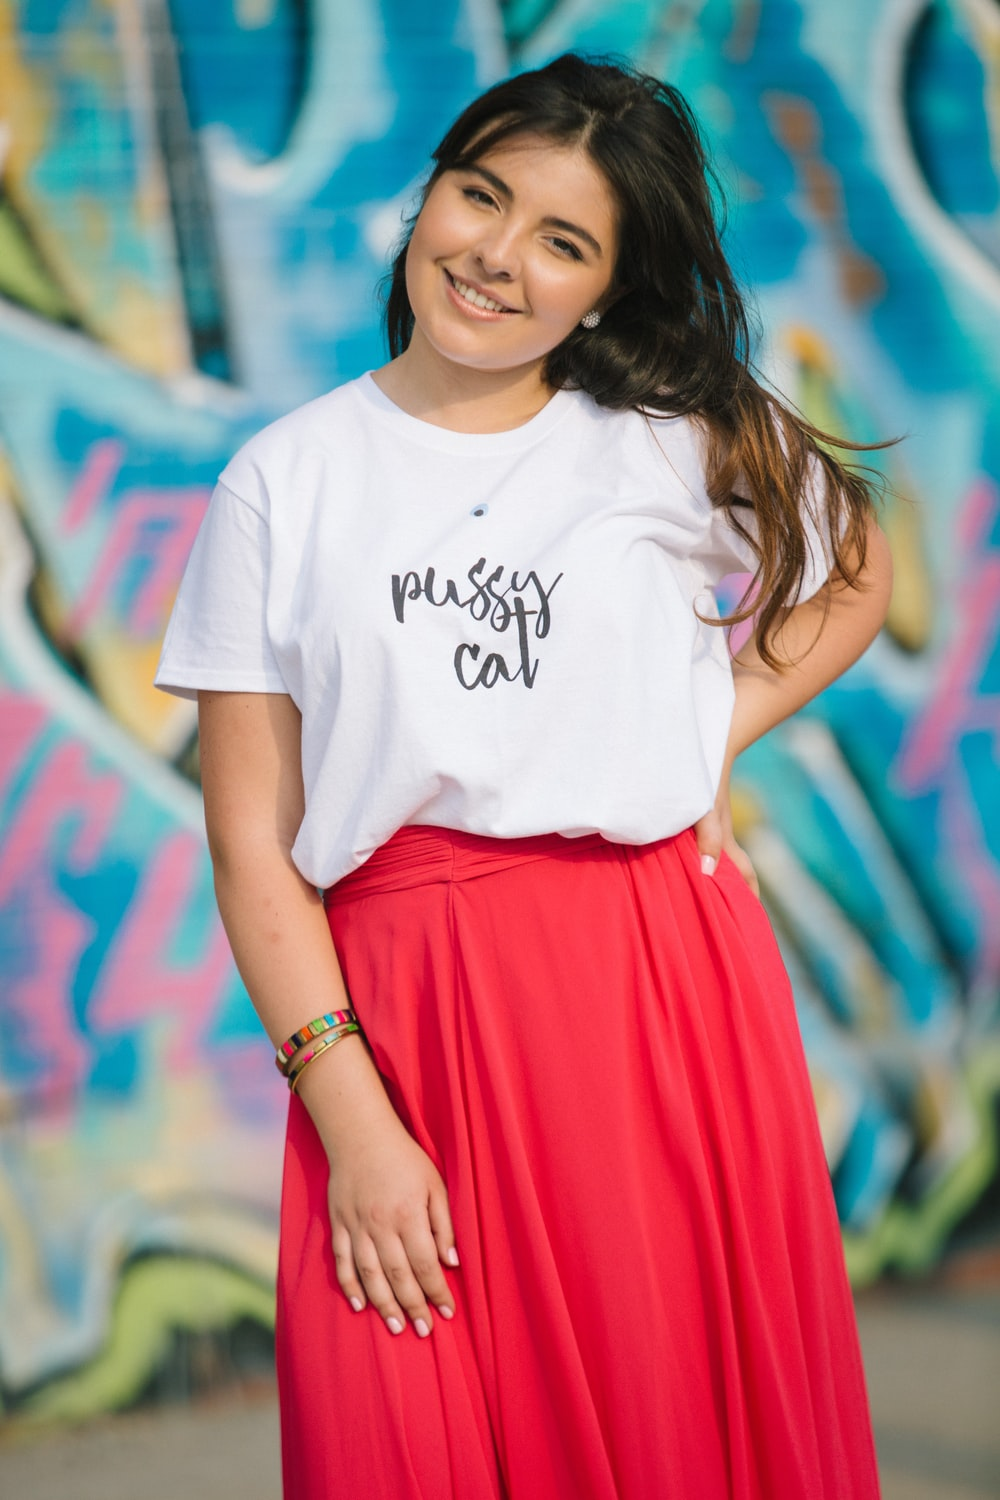 woman in white crew neck t-shirt and red skirt